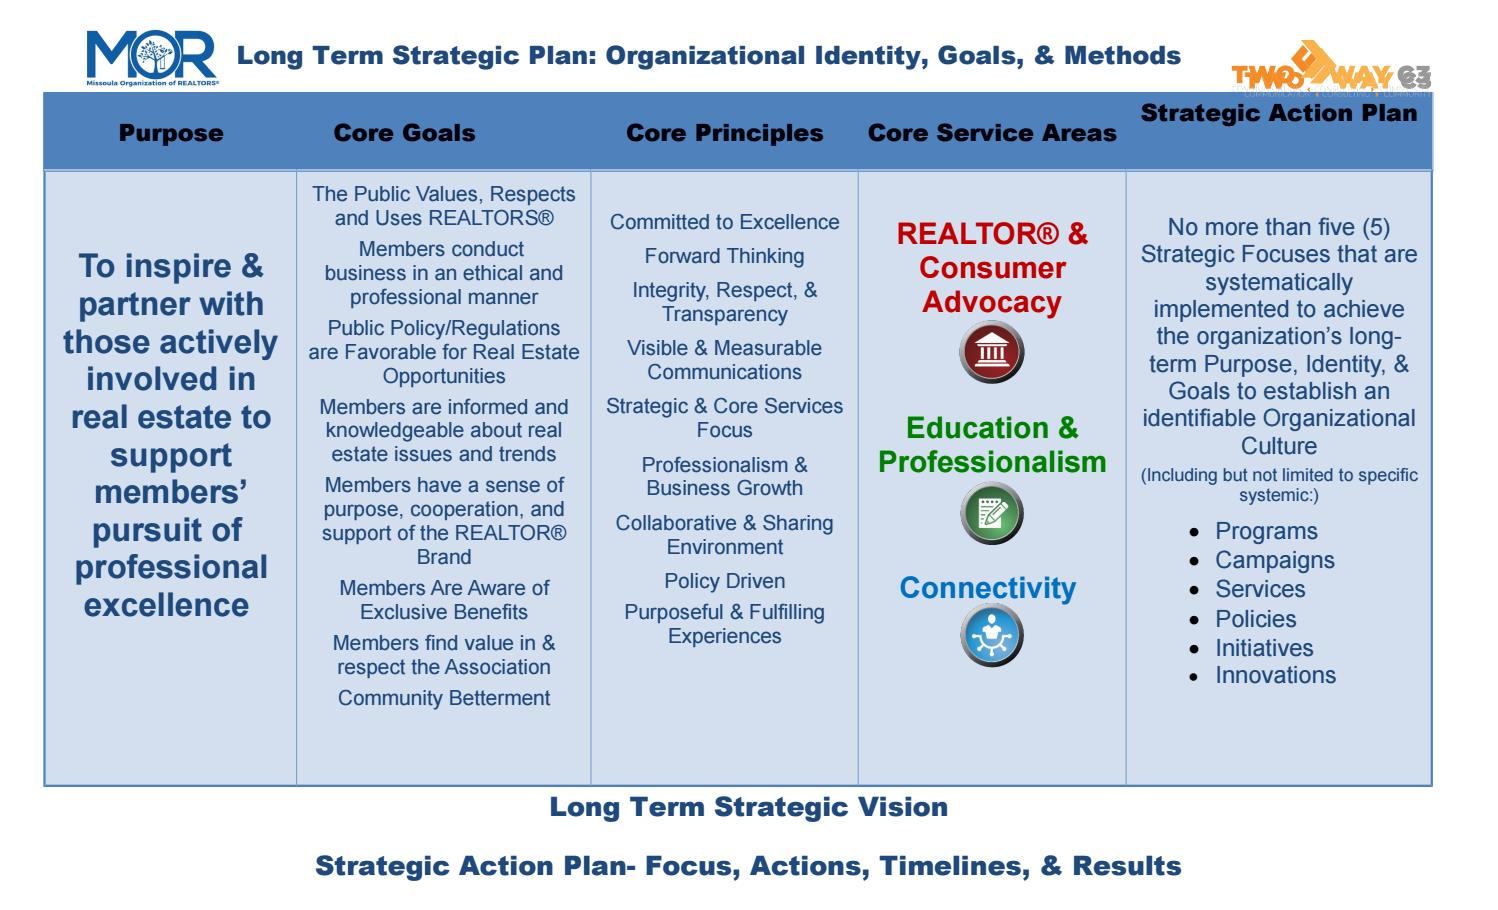 at t strategic action plan Follow these simple steps for creating your strategic marketing action plan and you'll soon find yourself on track for achieving your business goals.